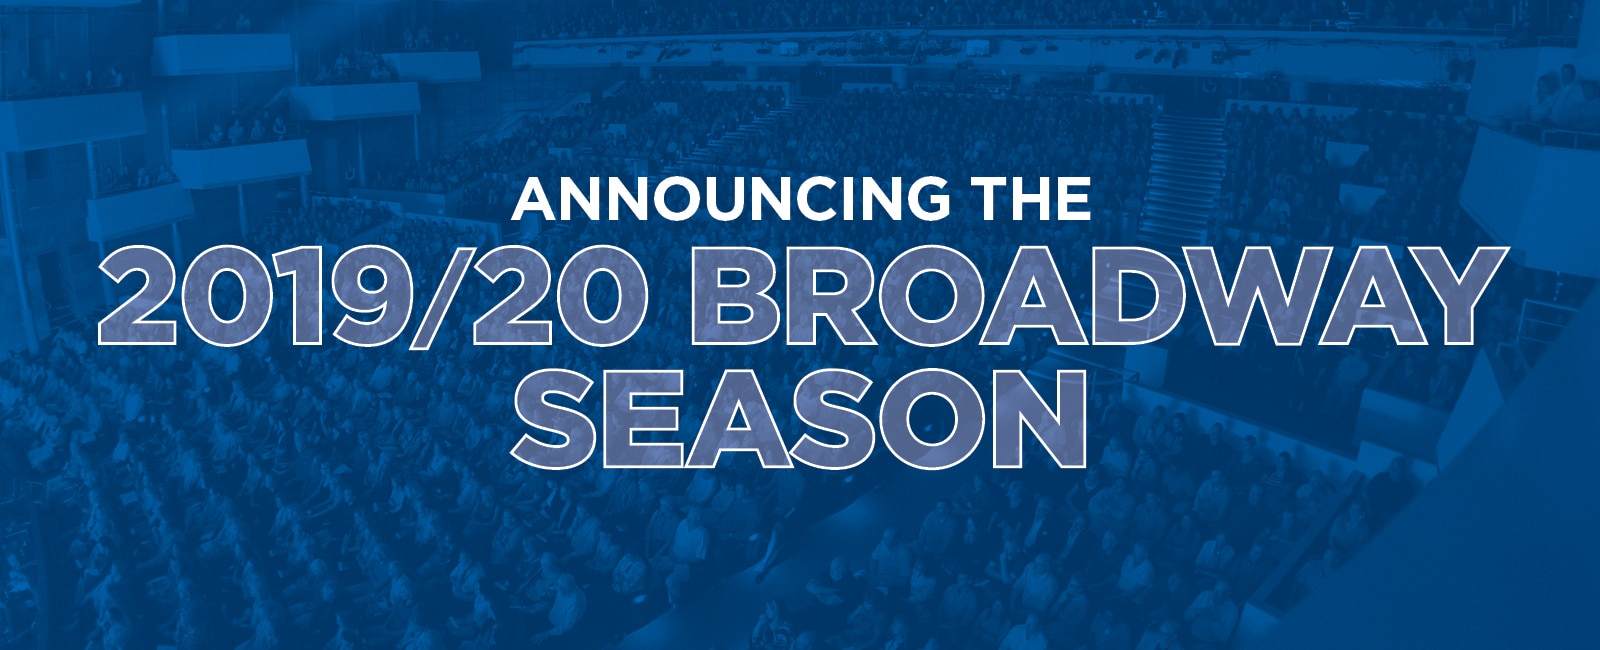 Denver Center announces its 2019-20 Broadway season and